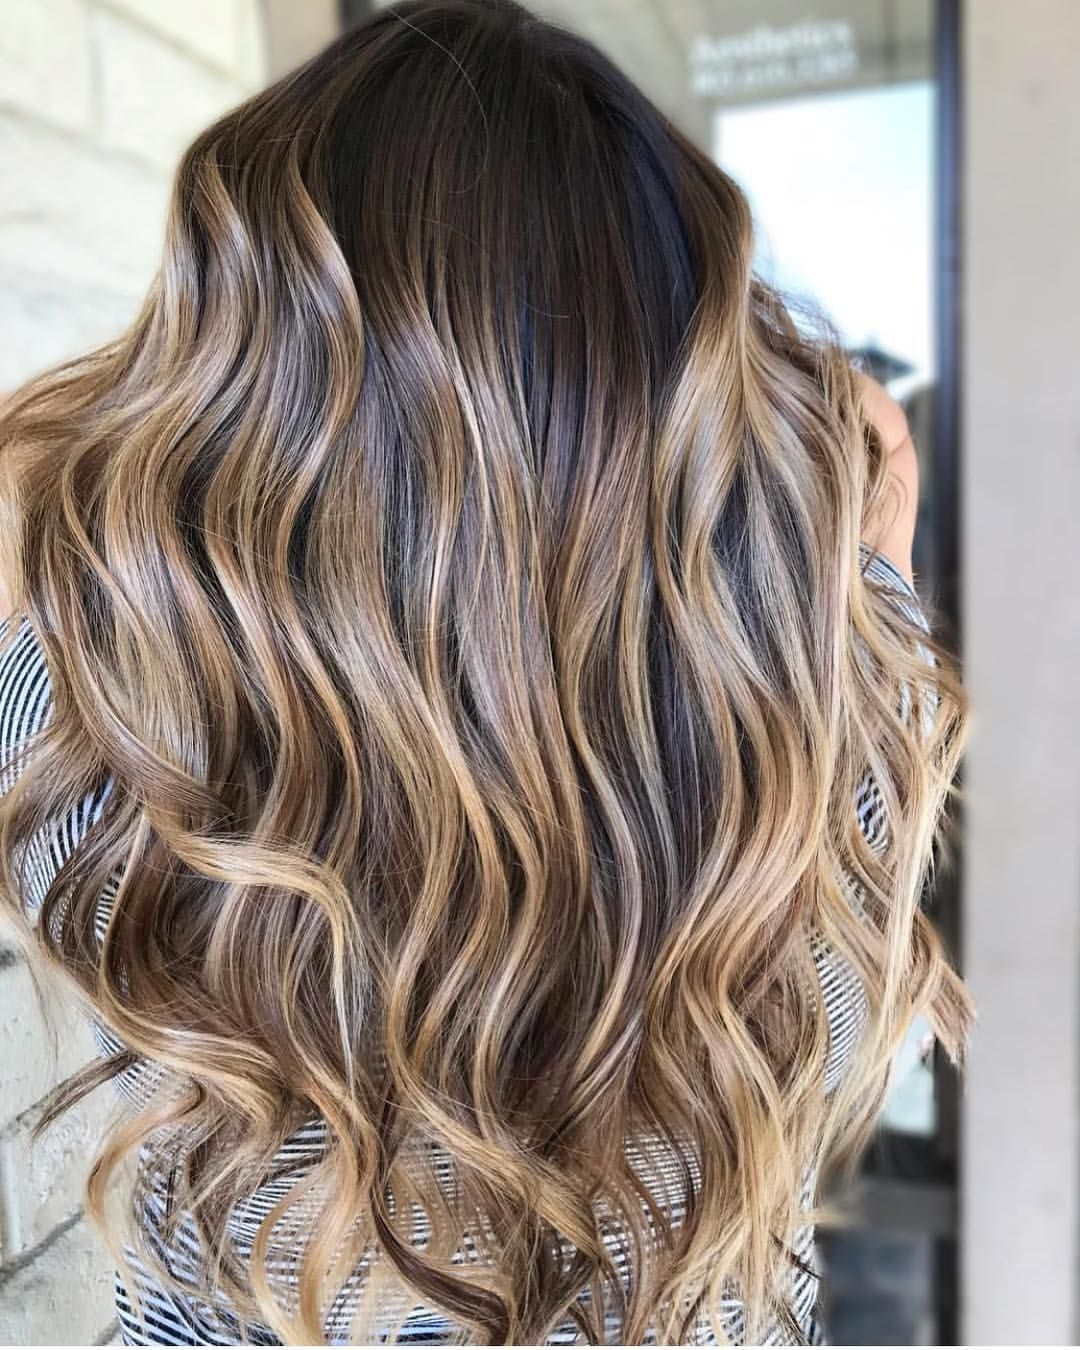 Balayage Beautiful Hair On Instagram Moroccan Sands By